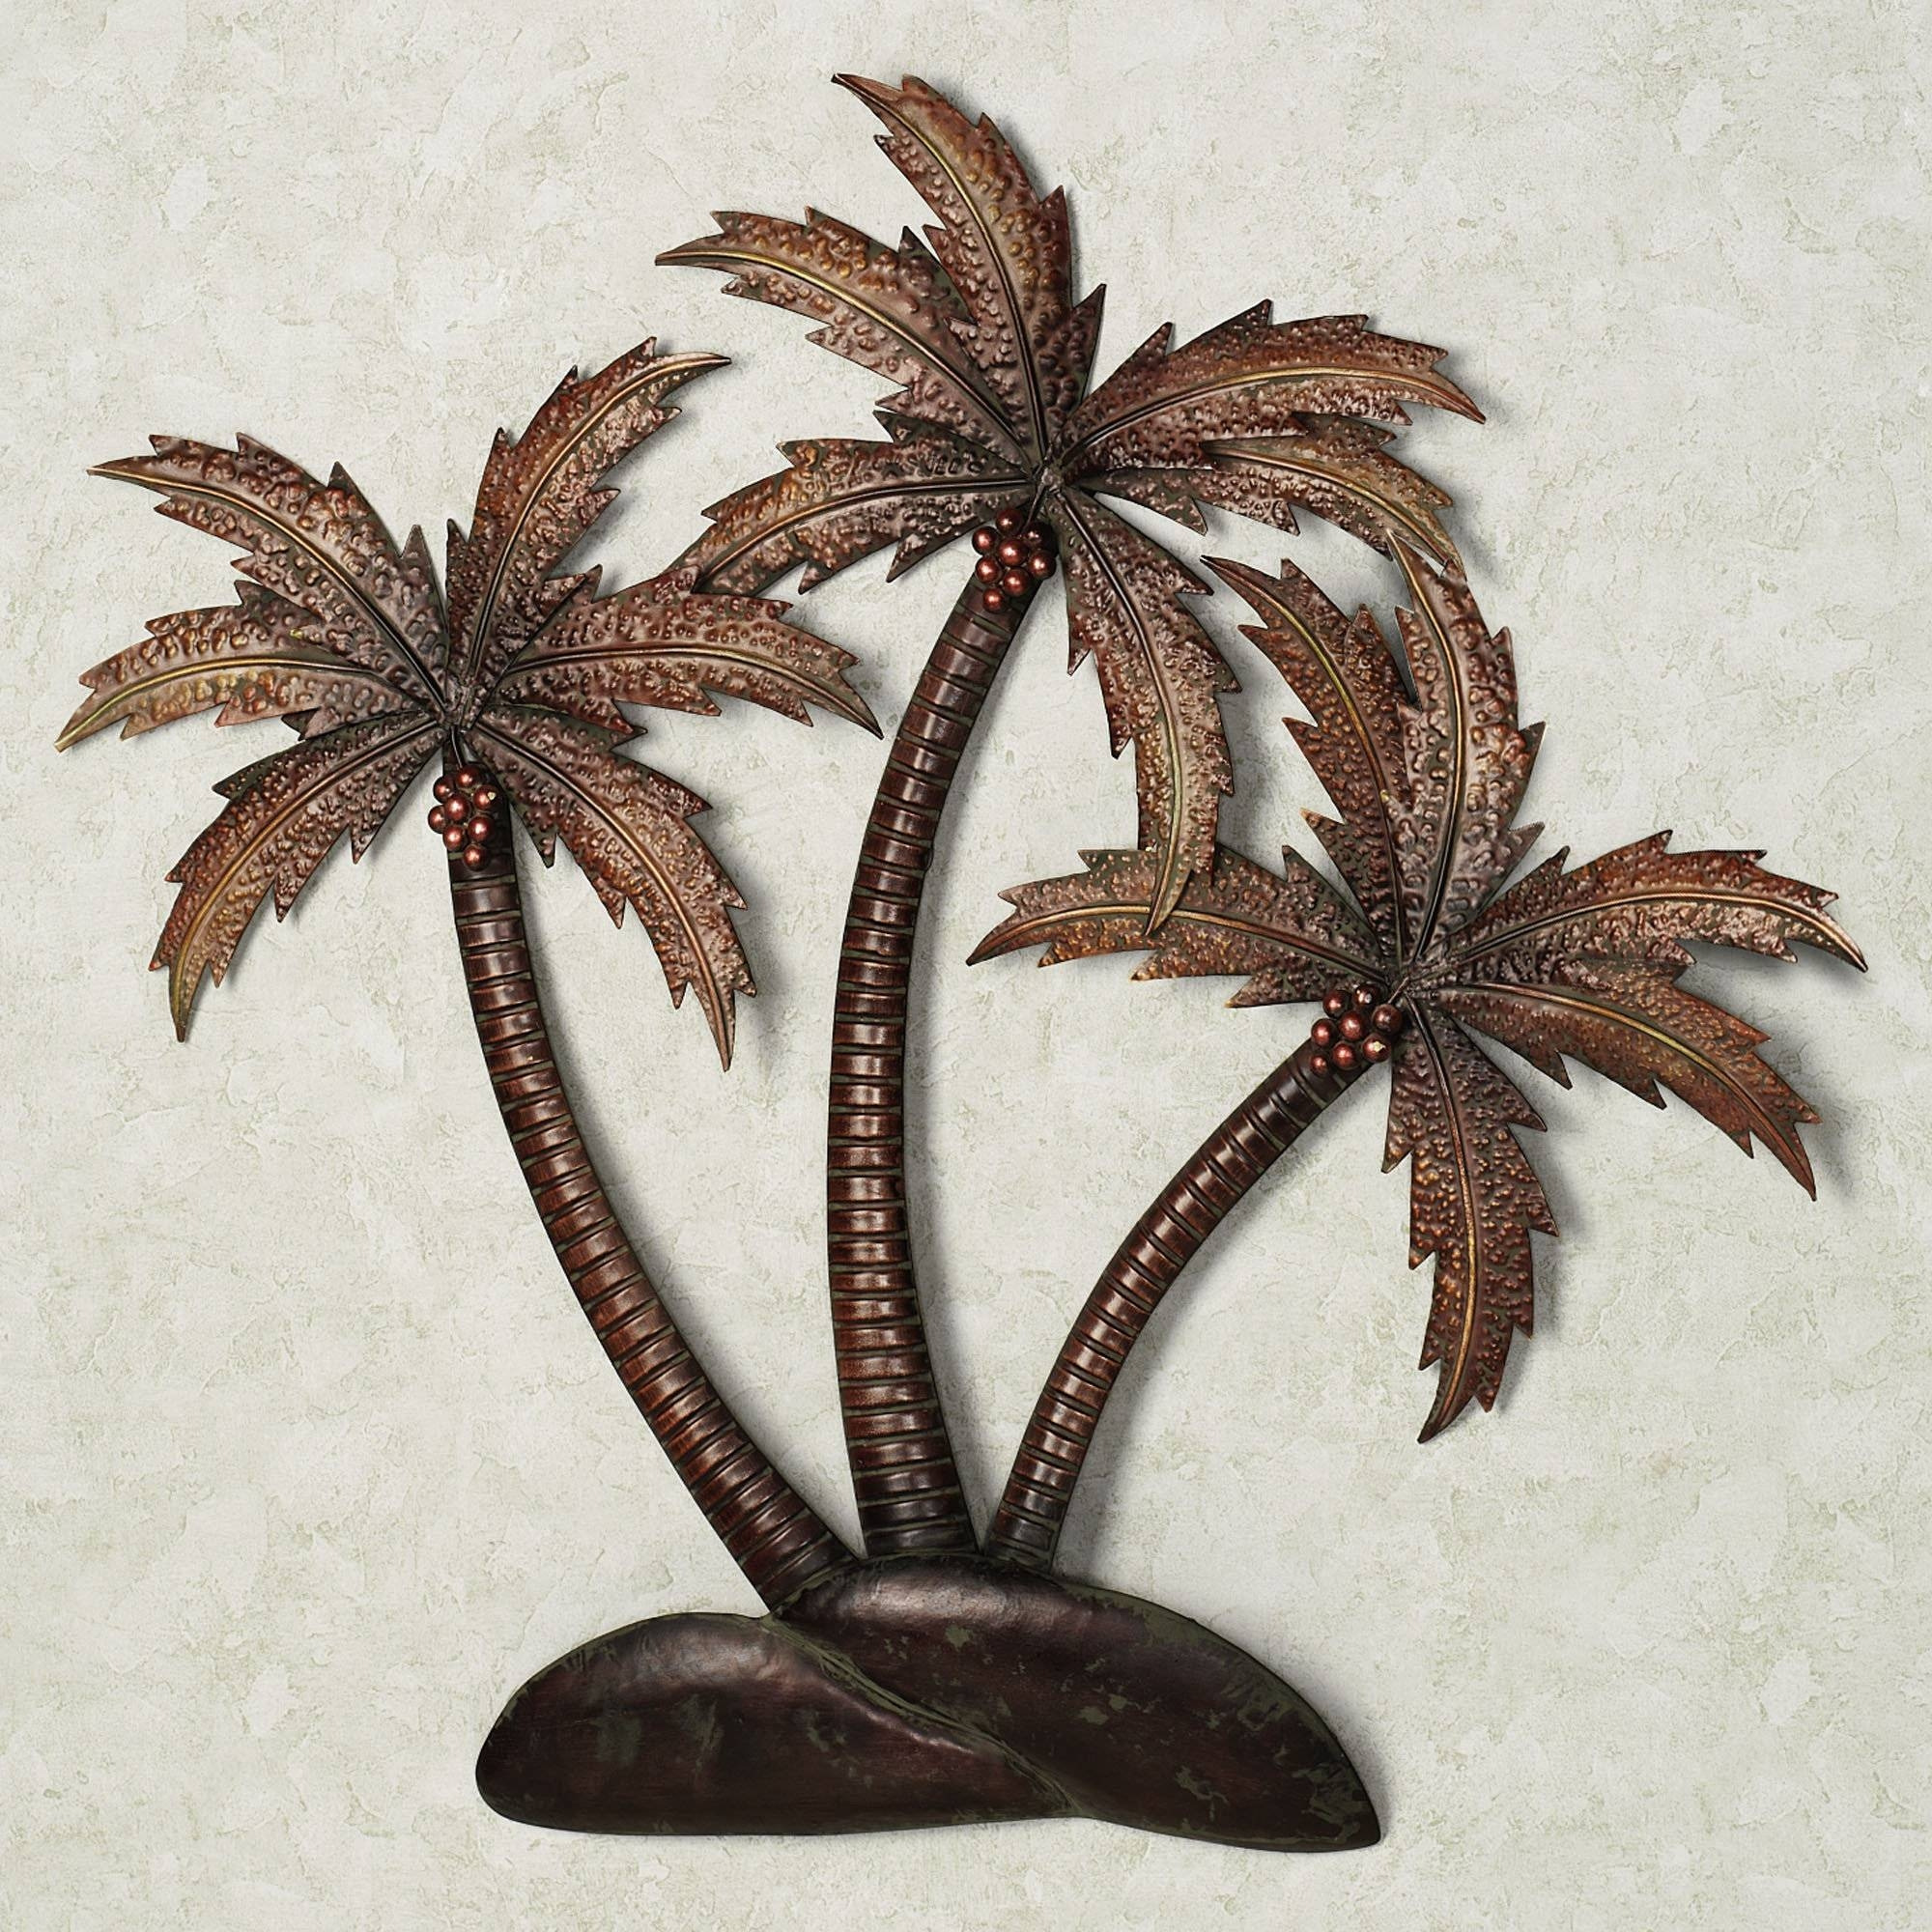 Wall Art Designs: Metal Palm Tree Wall Art Luxury On Large Wall Inside Most Recently Released Bronze Metal Wall Art (View 13 of 20)